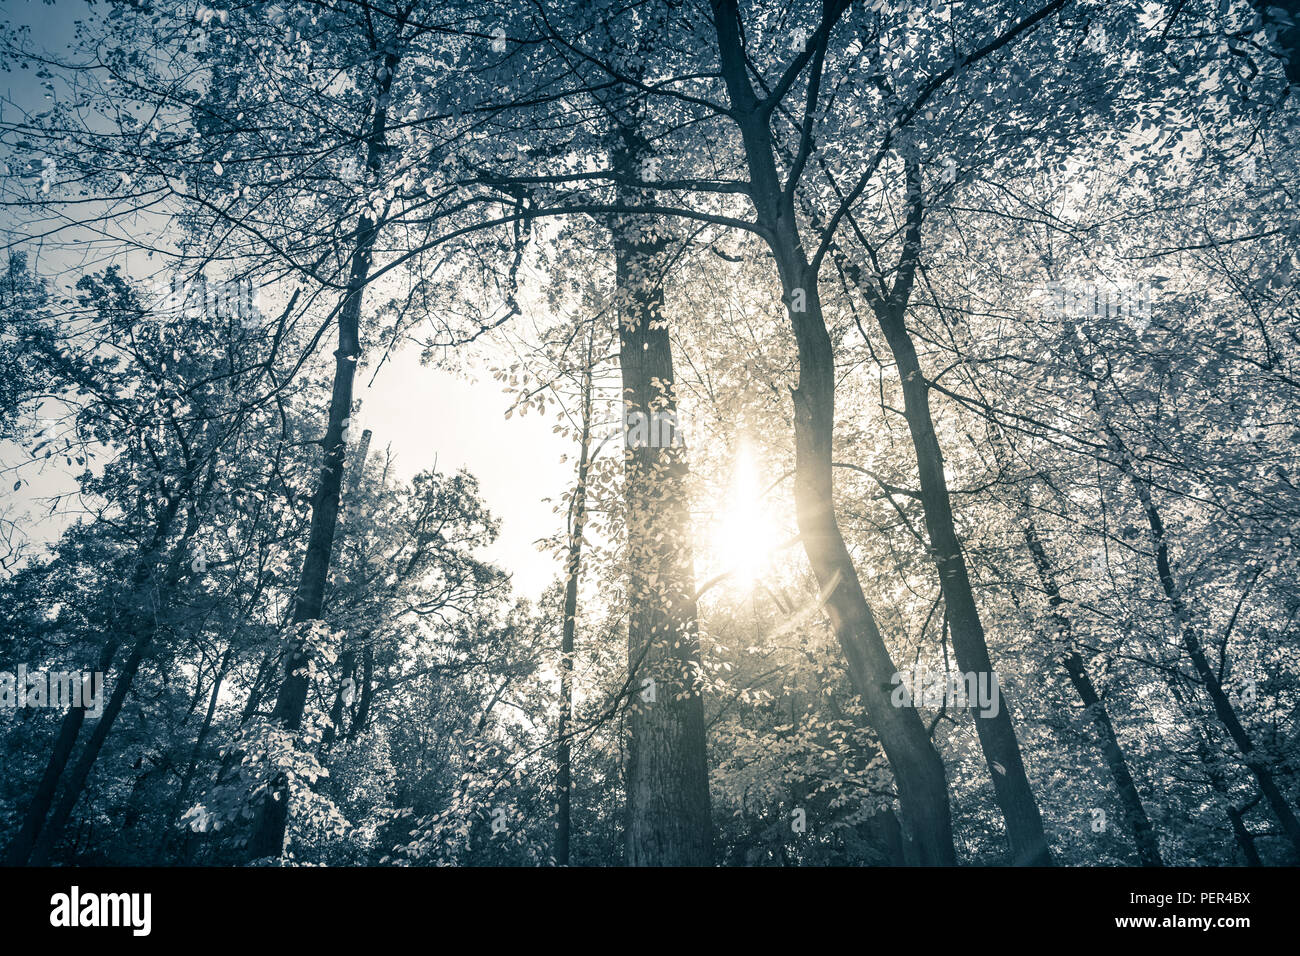 Monochrome forest in a sunny day. depressing nature. - Stock Image